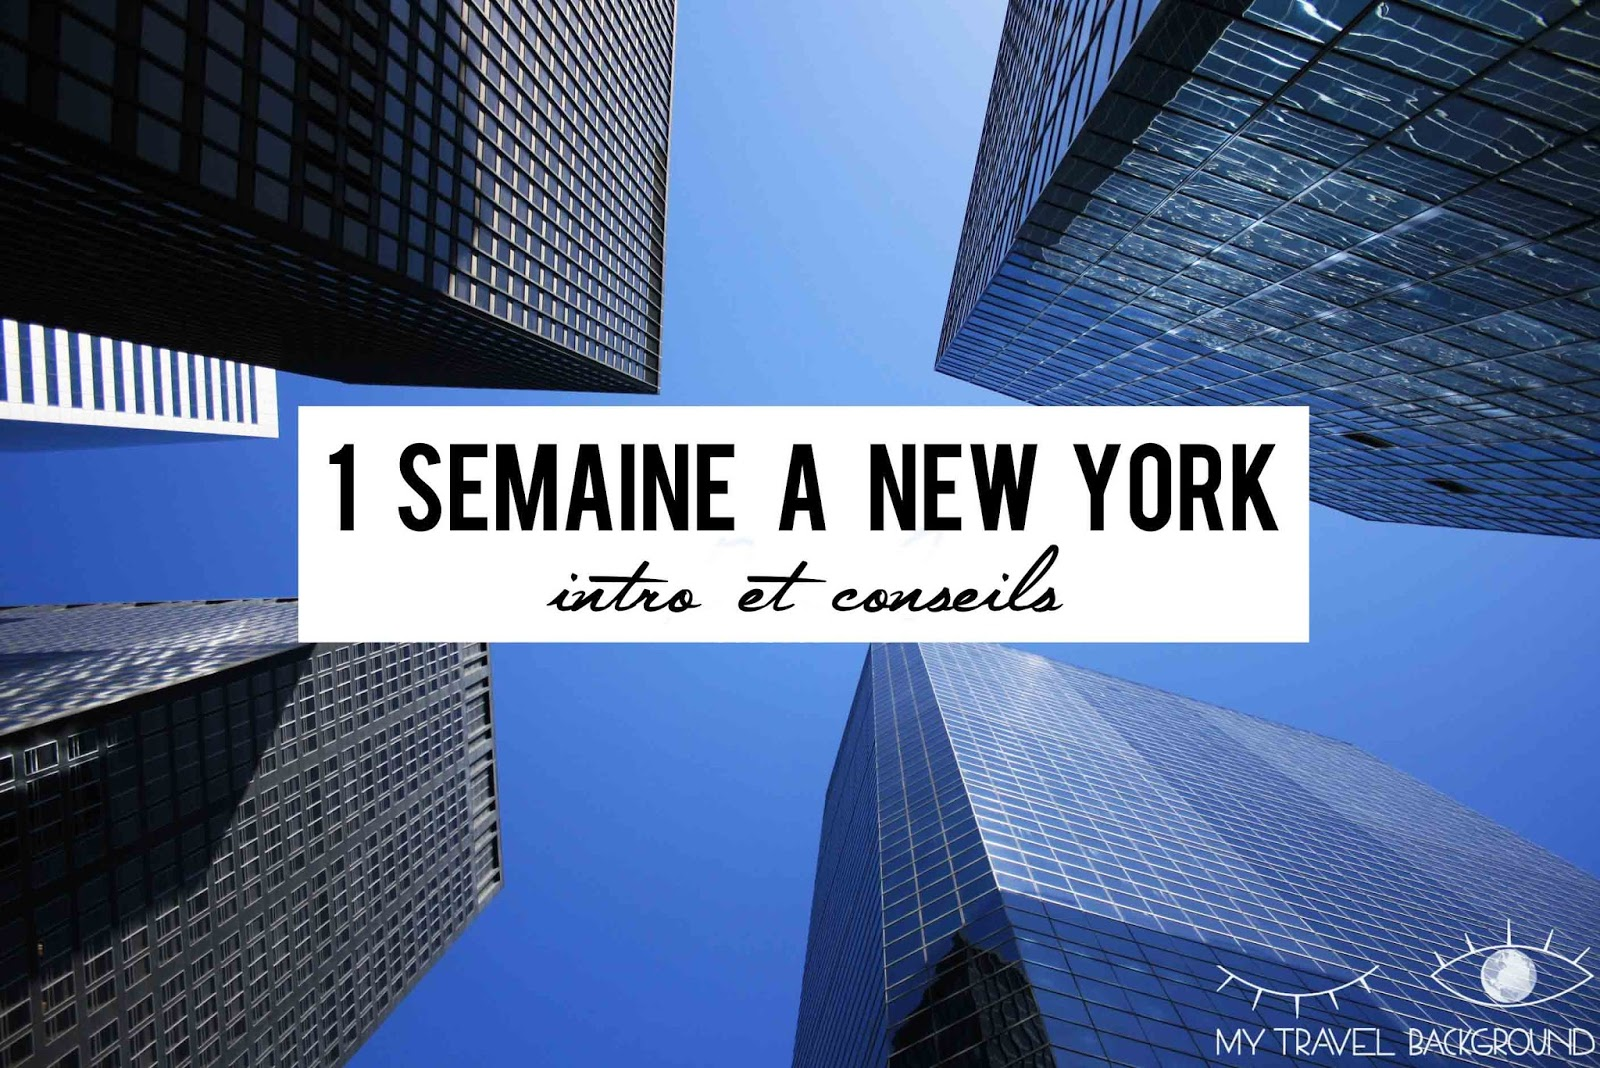 My Travel Background : Une semaine à New York, introduction et conseils